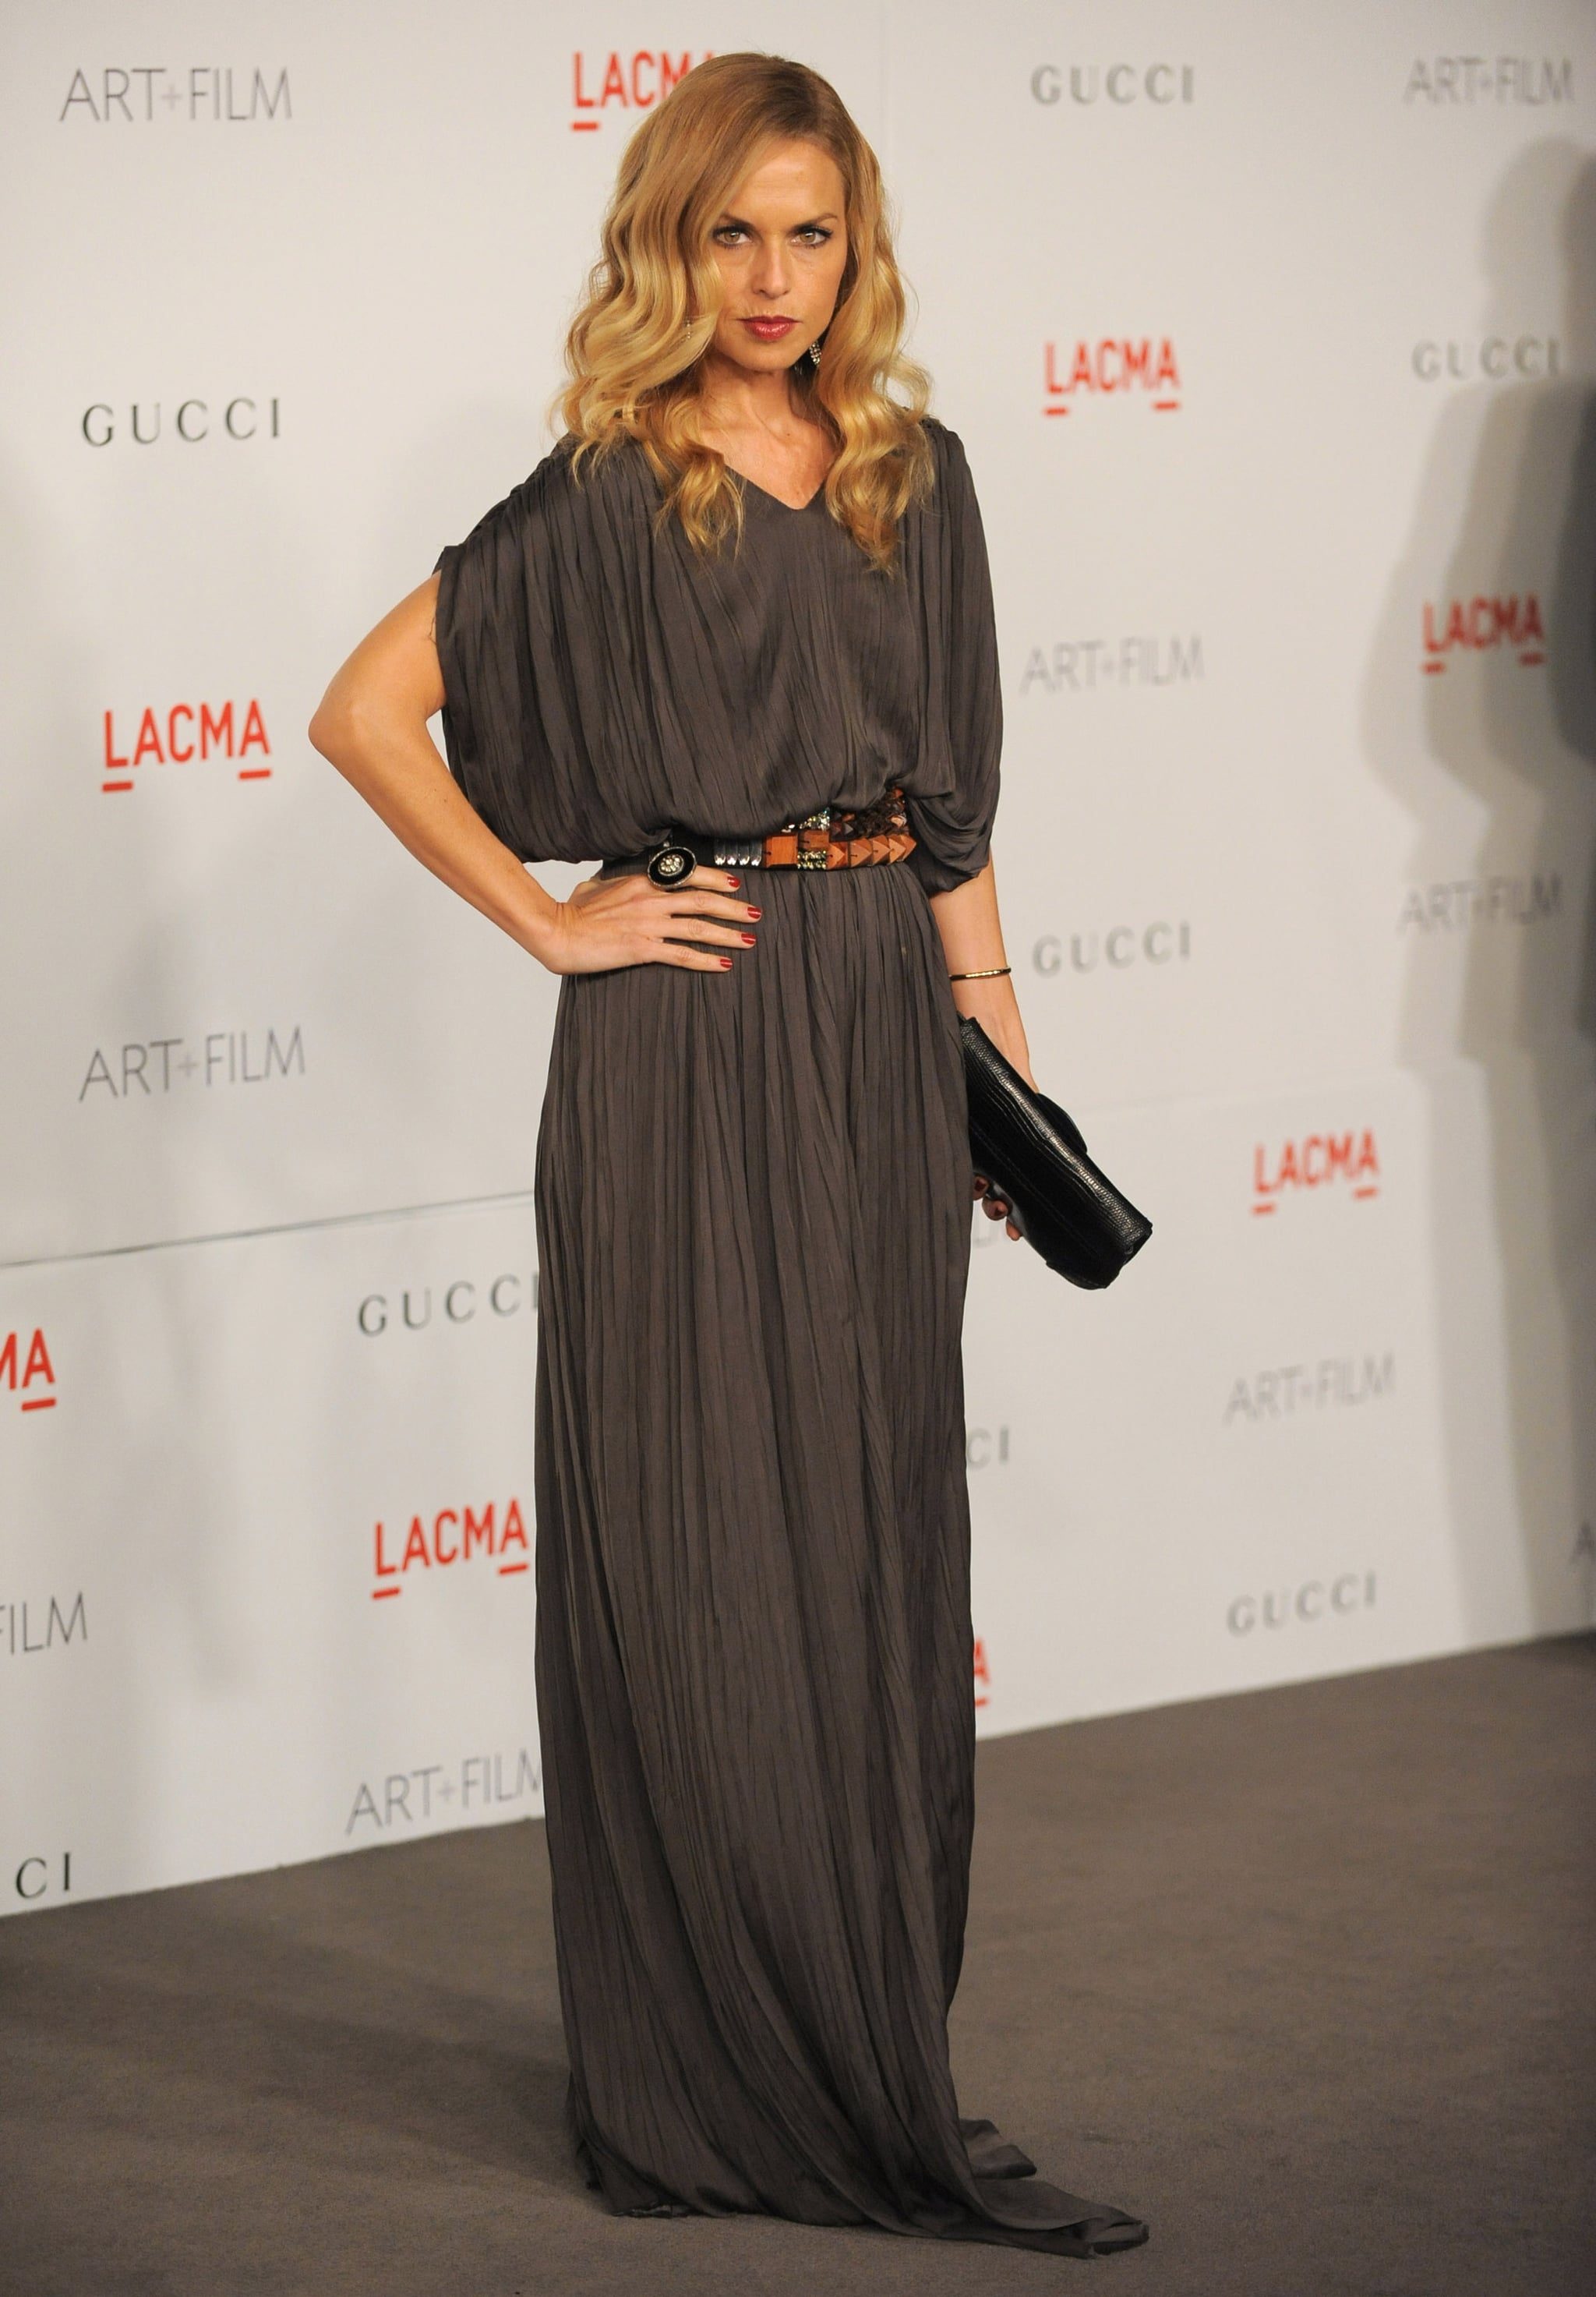 Rachel Zoe on the LACMA gray carpet.